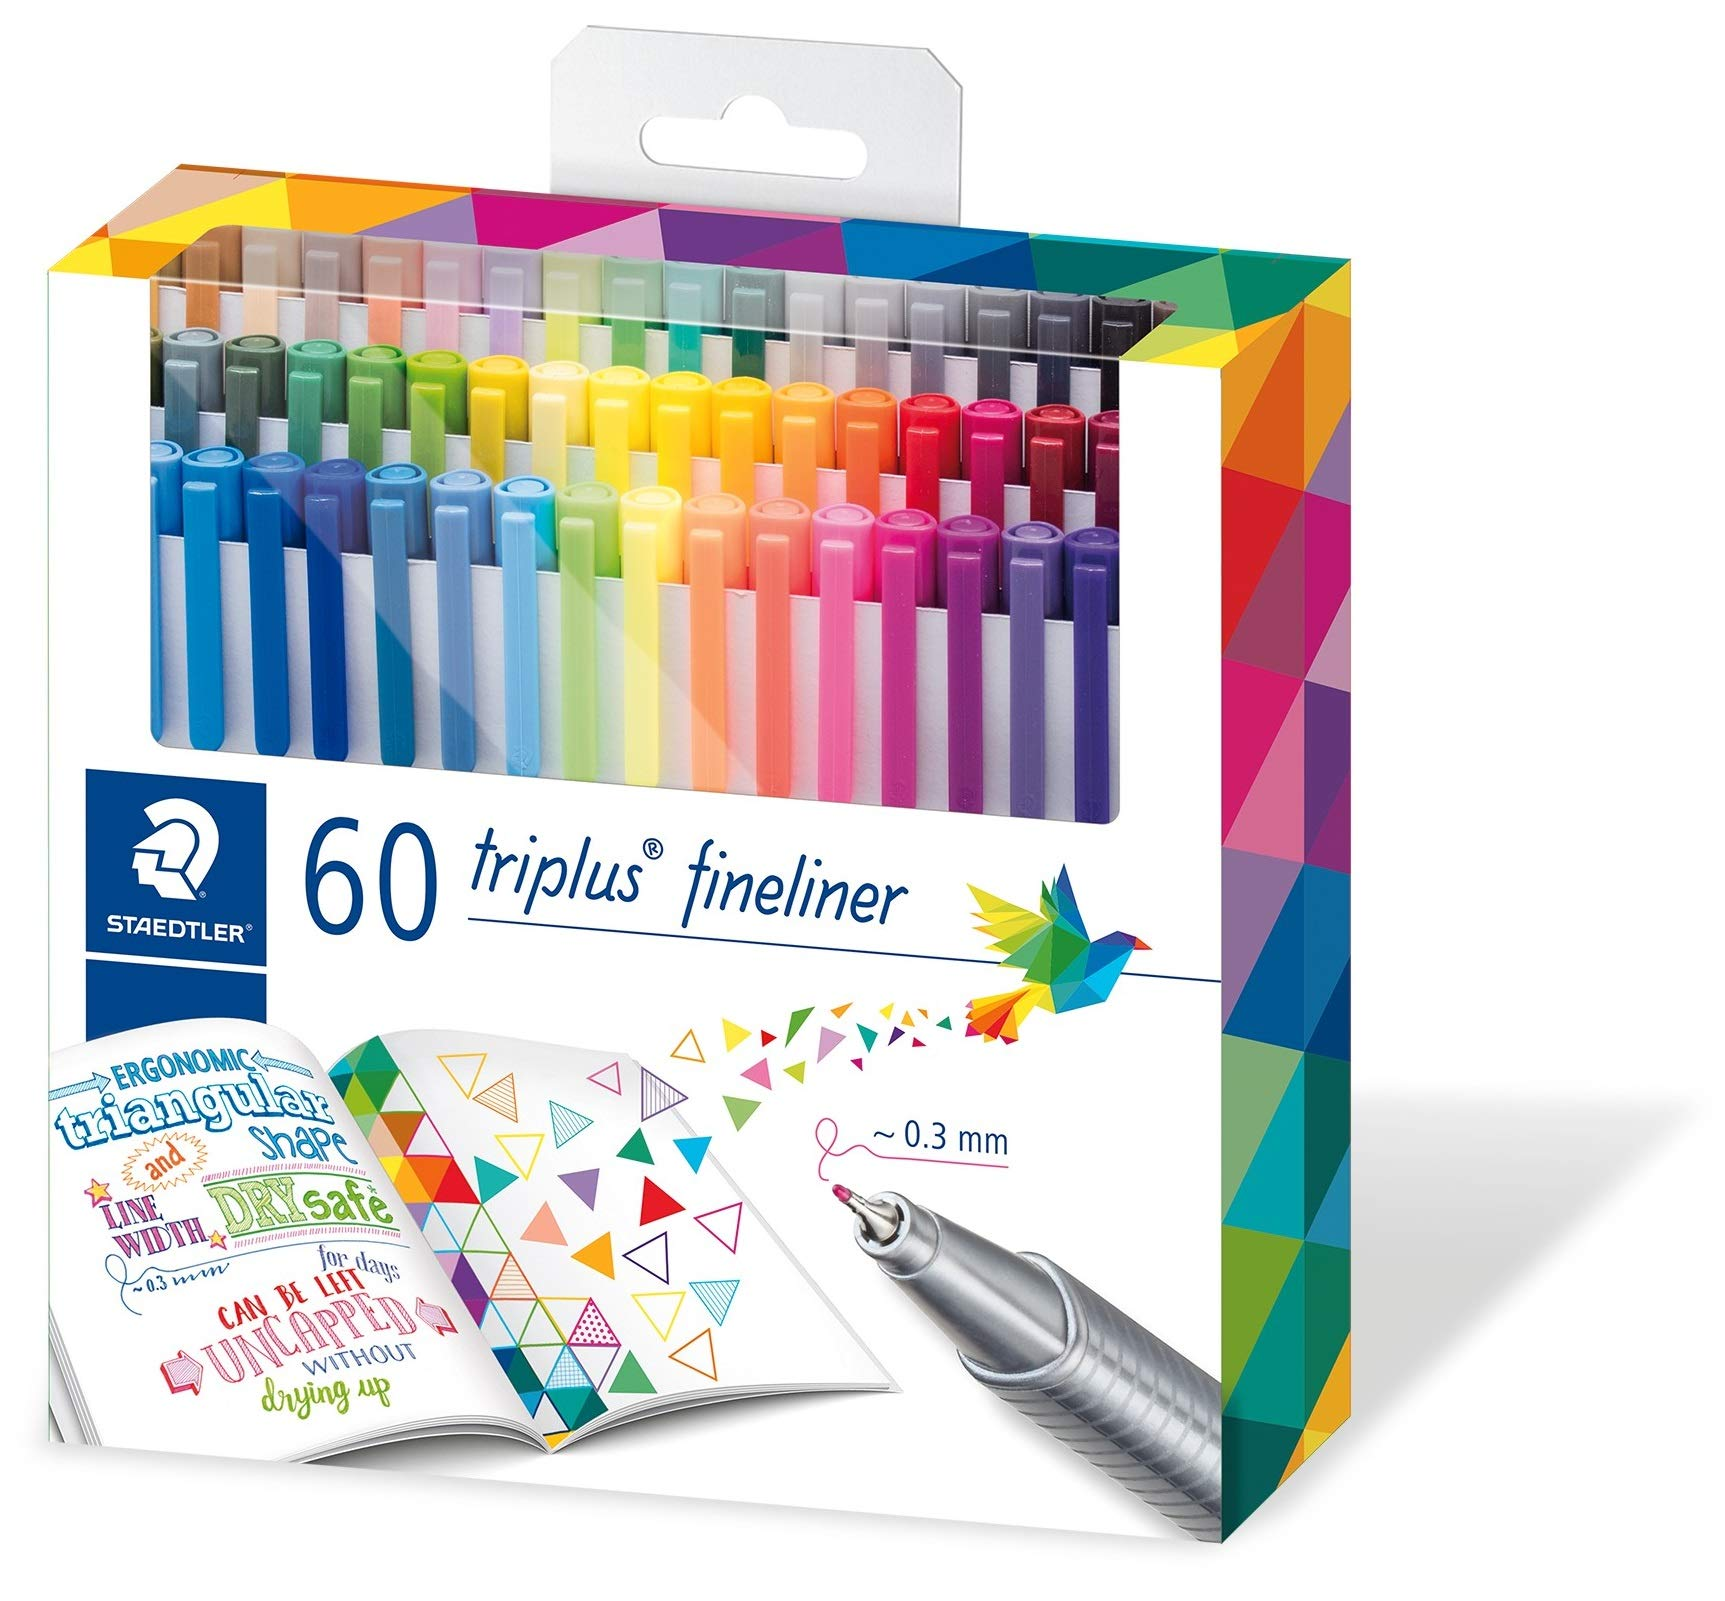 Staedtler triplus fineliner triangular, set with 60 brilliant colours, made in Germany, super fine, metal-clad tip, line width approx. 0.3 mm, 334 C60 by STAEDTLER (Image #1)